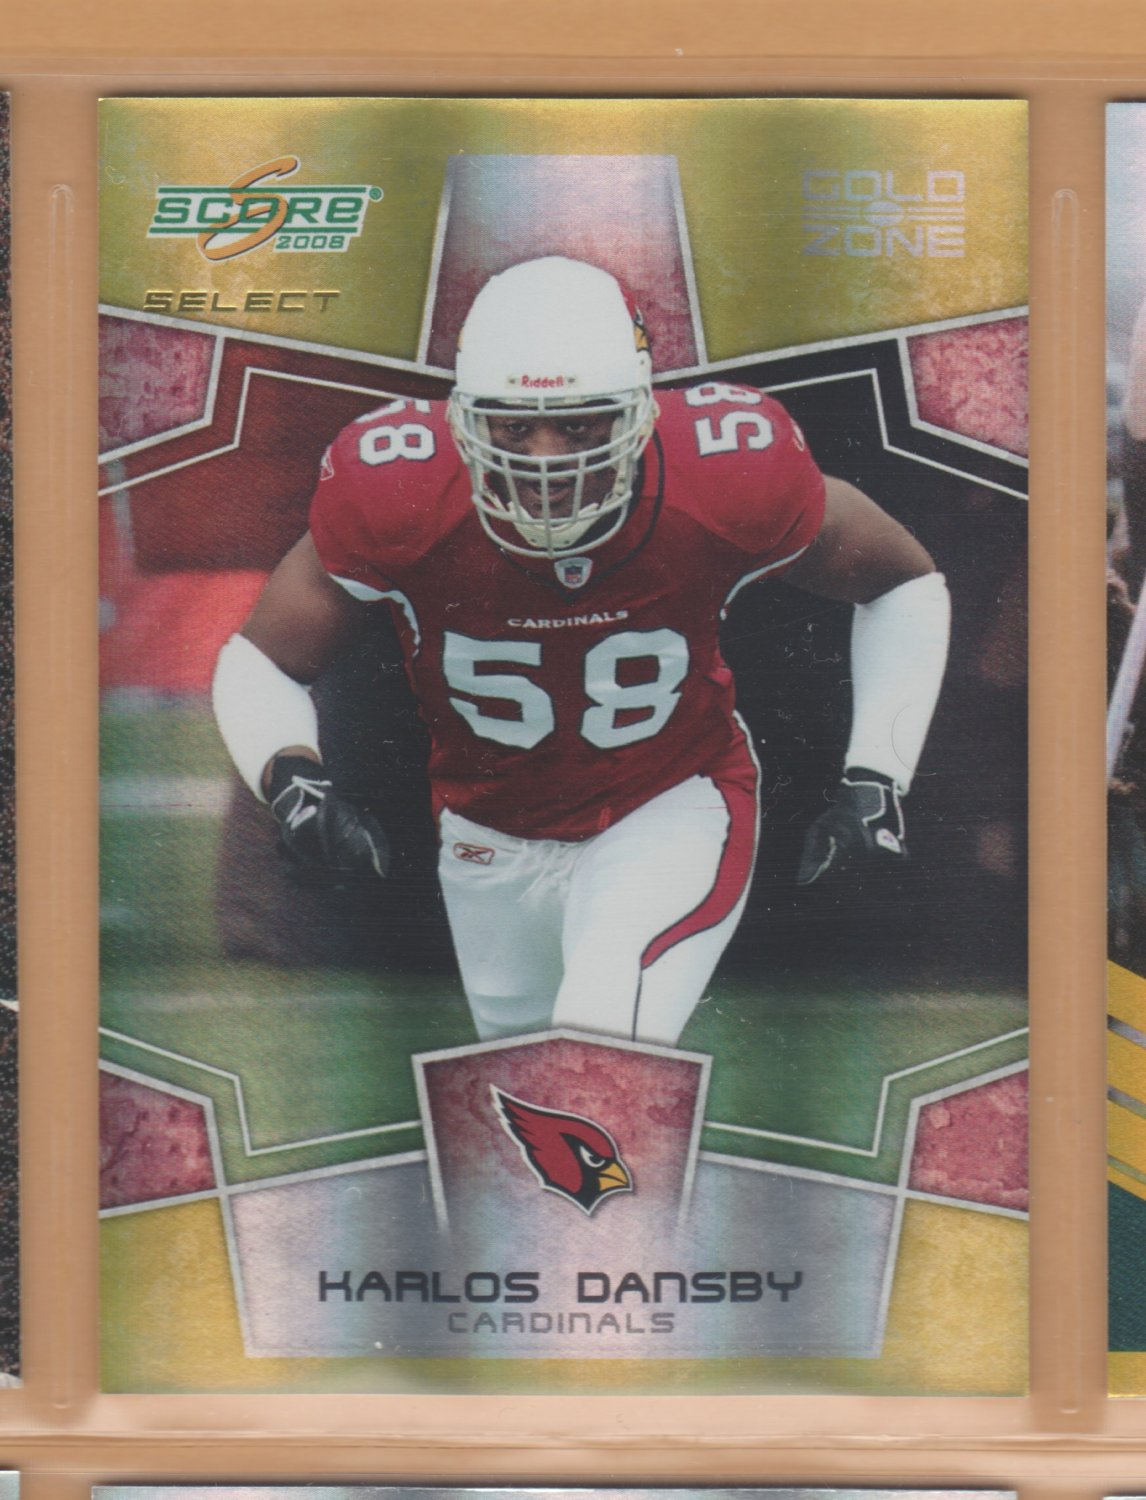 2008 Score Select Gold Zone Karlos Dansby Cardinals /50